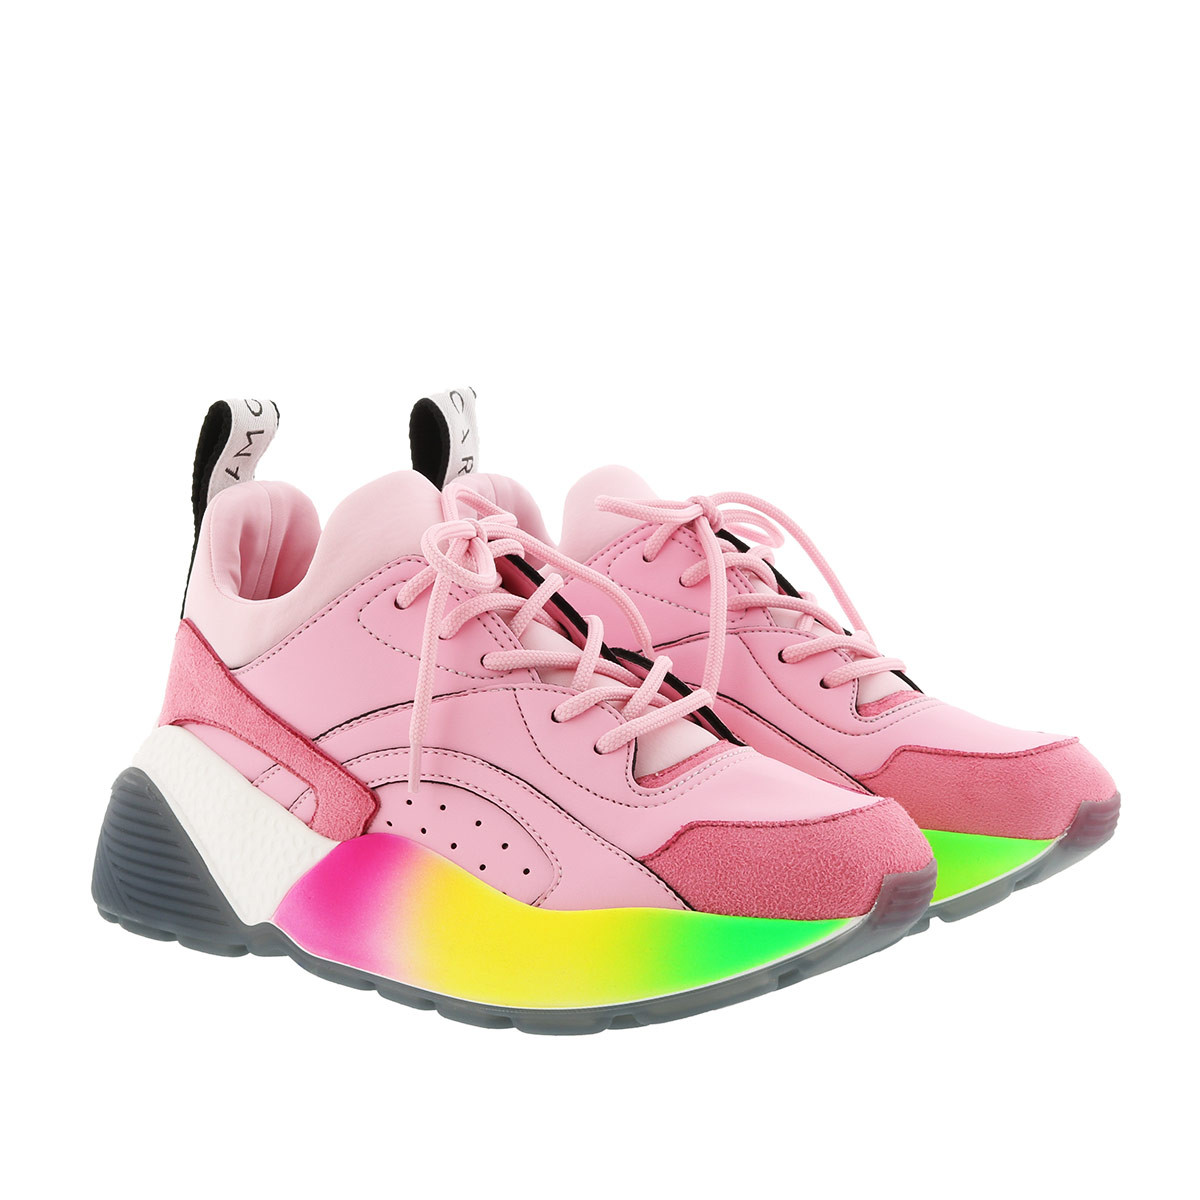 Stella McCartney Sneakers - Eclypse Sneaker Pink - in rosa - für Damen